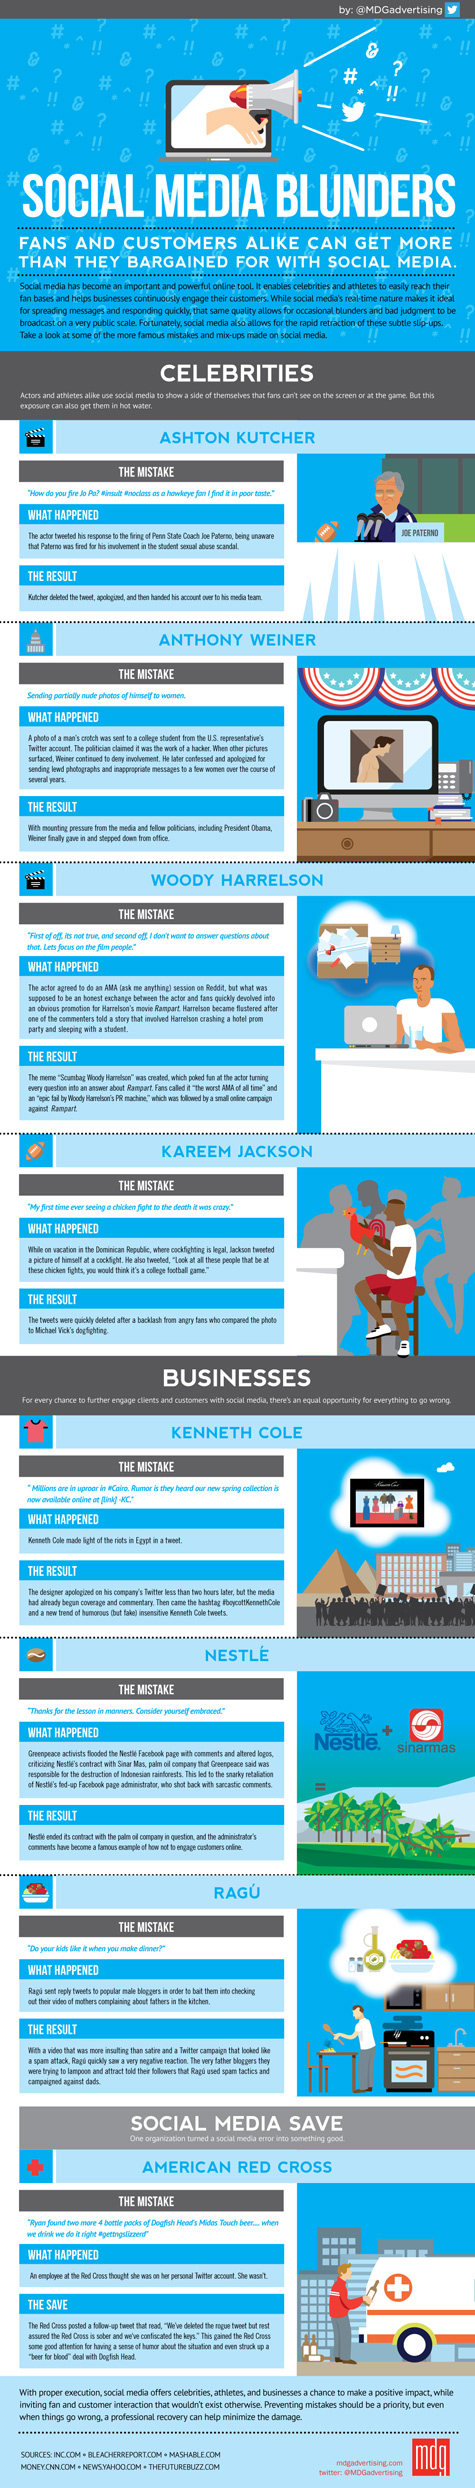 Social Media Blunders #infographic